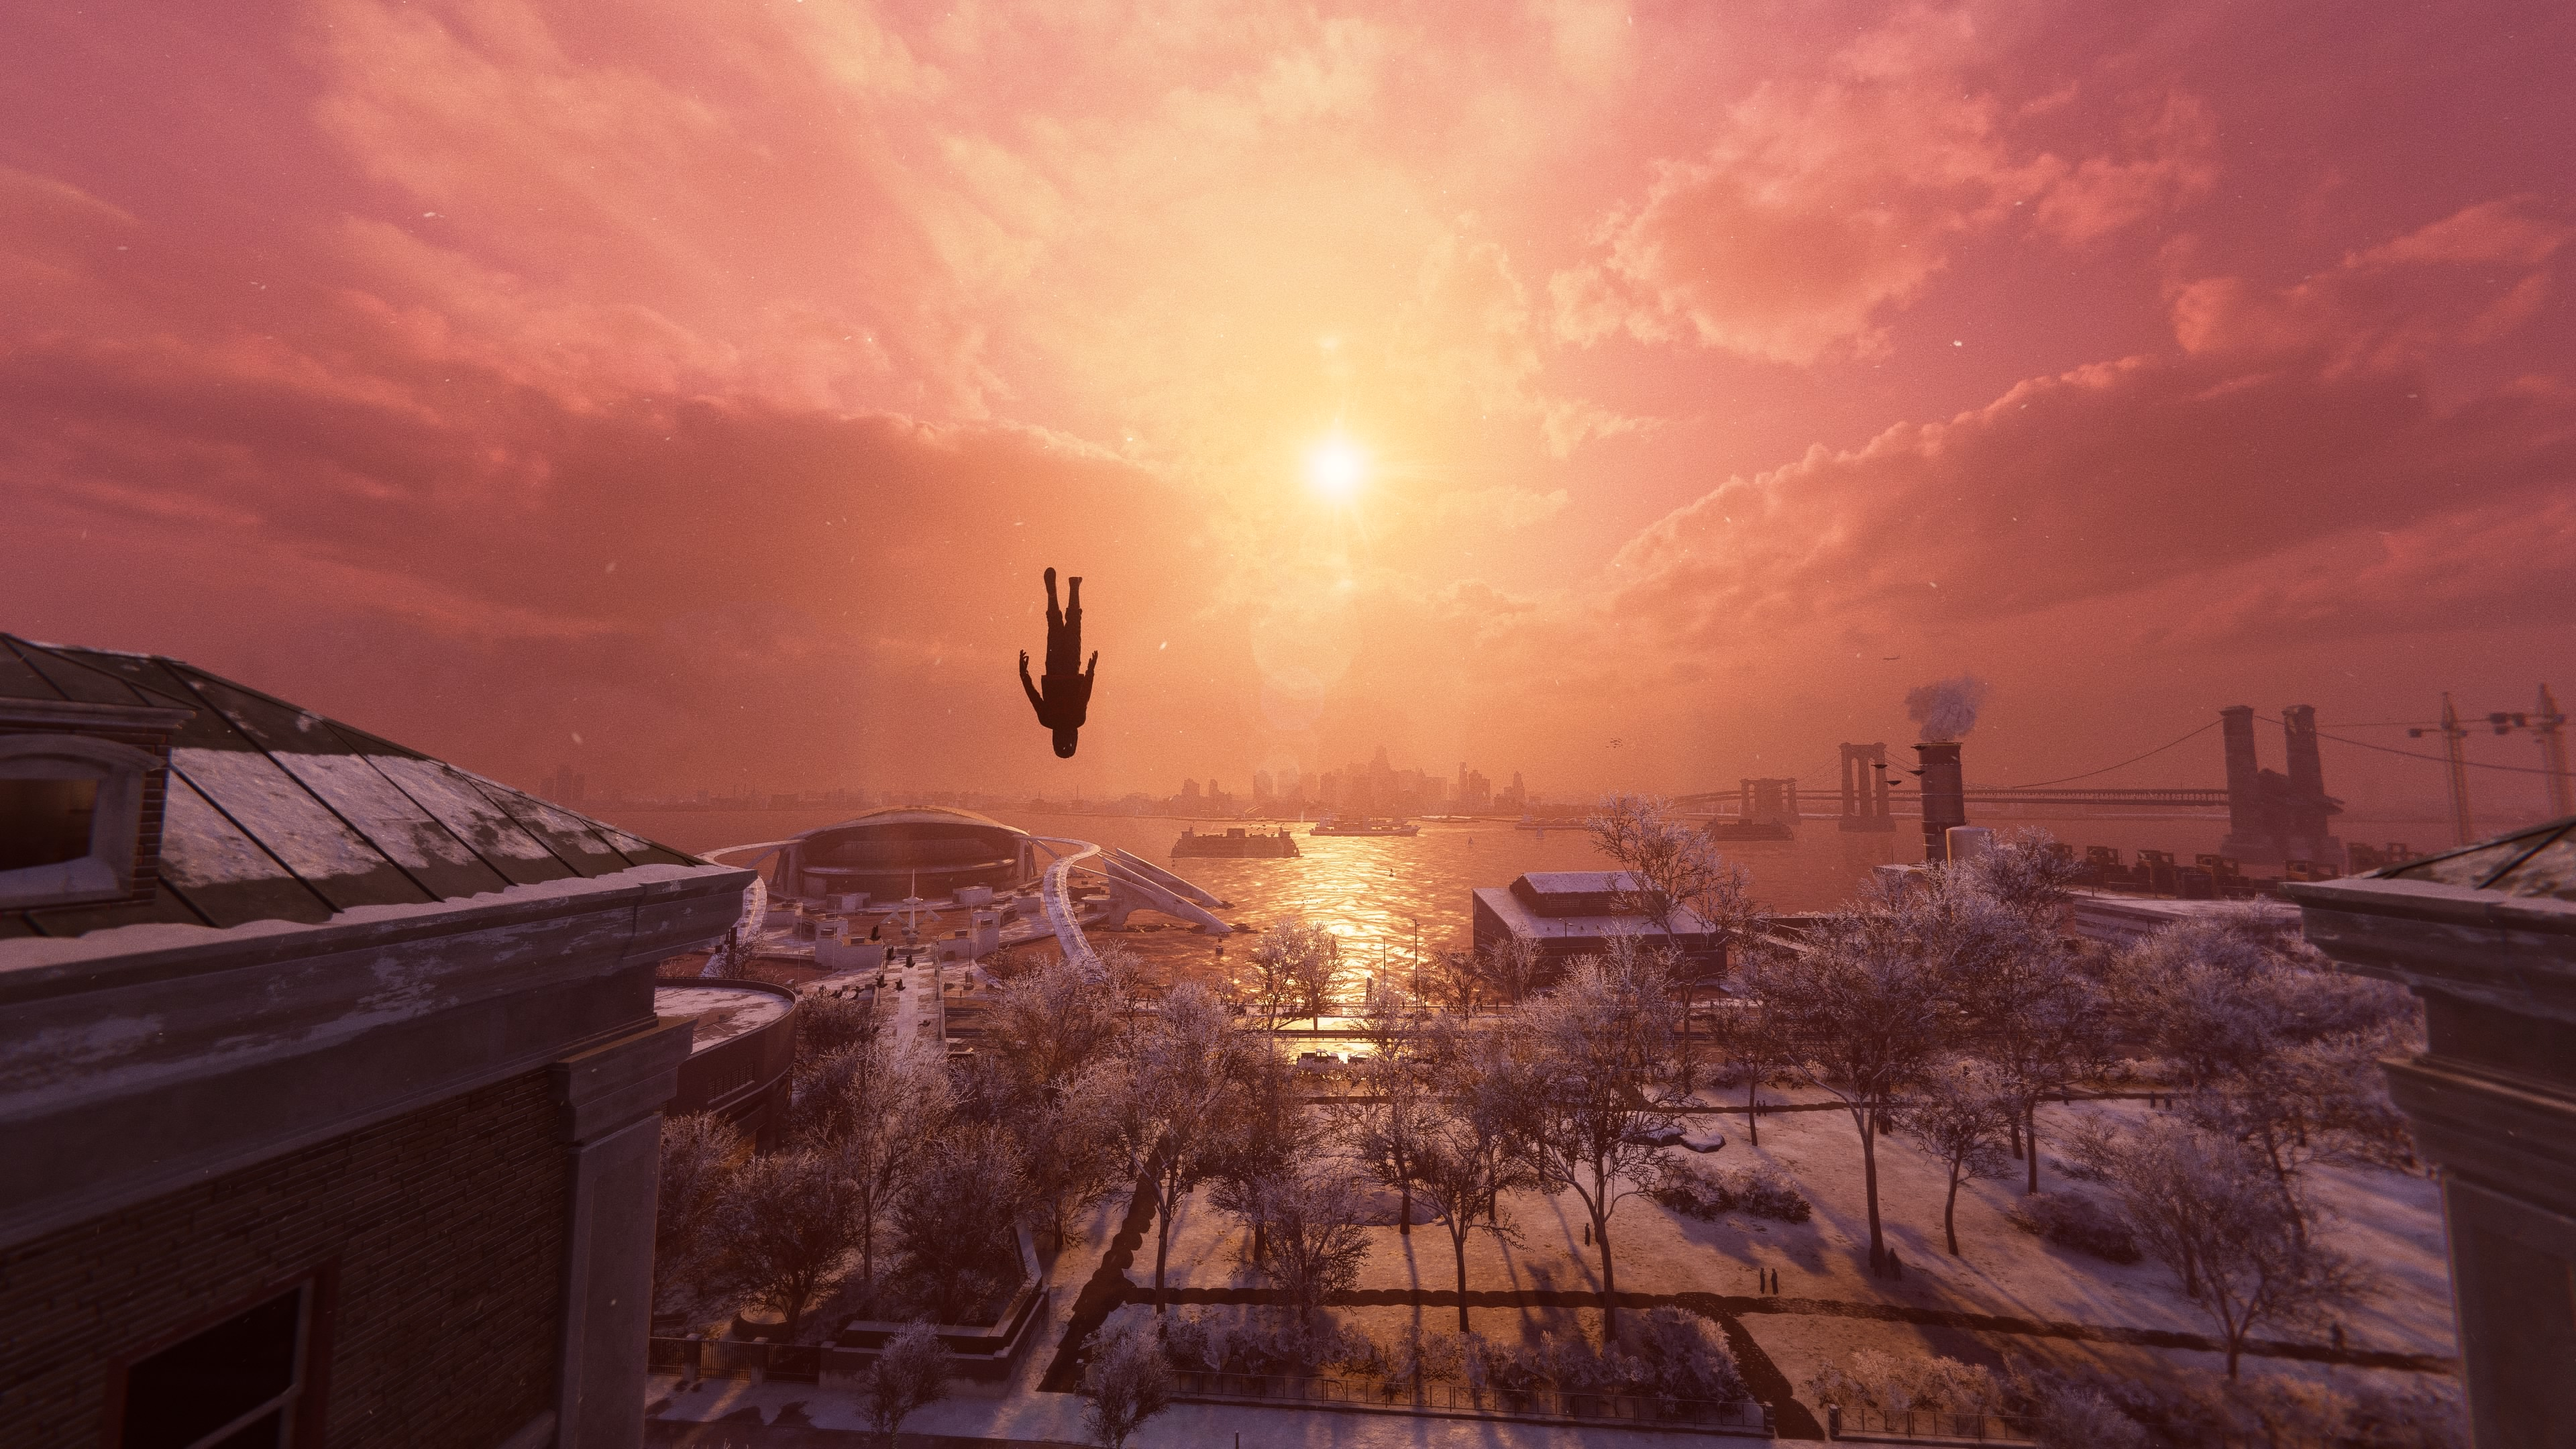 Miles falling in front of a sunset over the city. He is fully upside down.